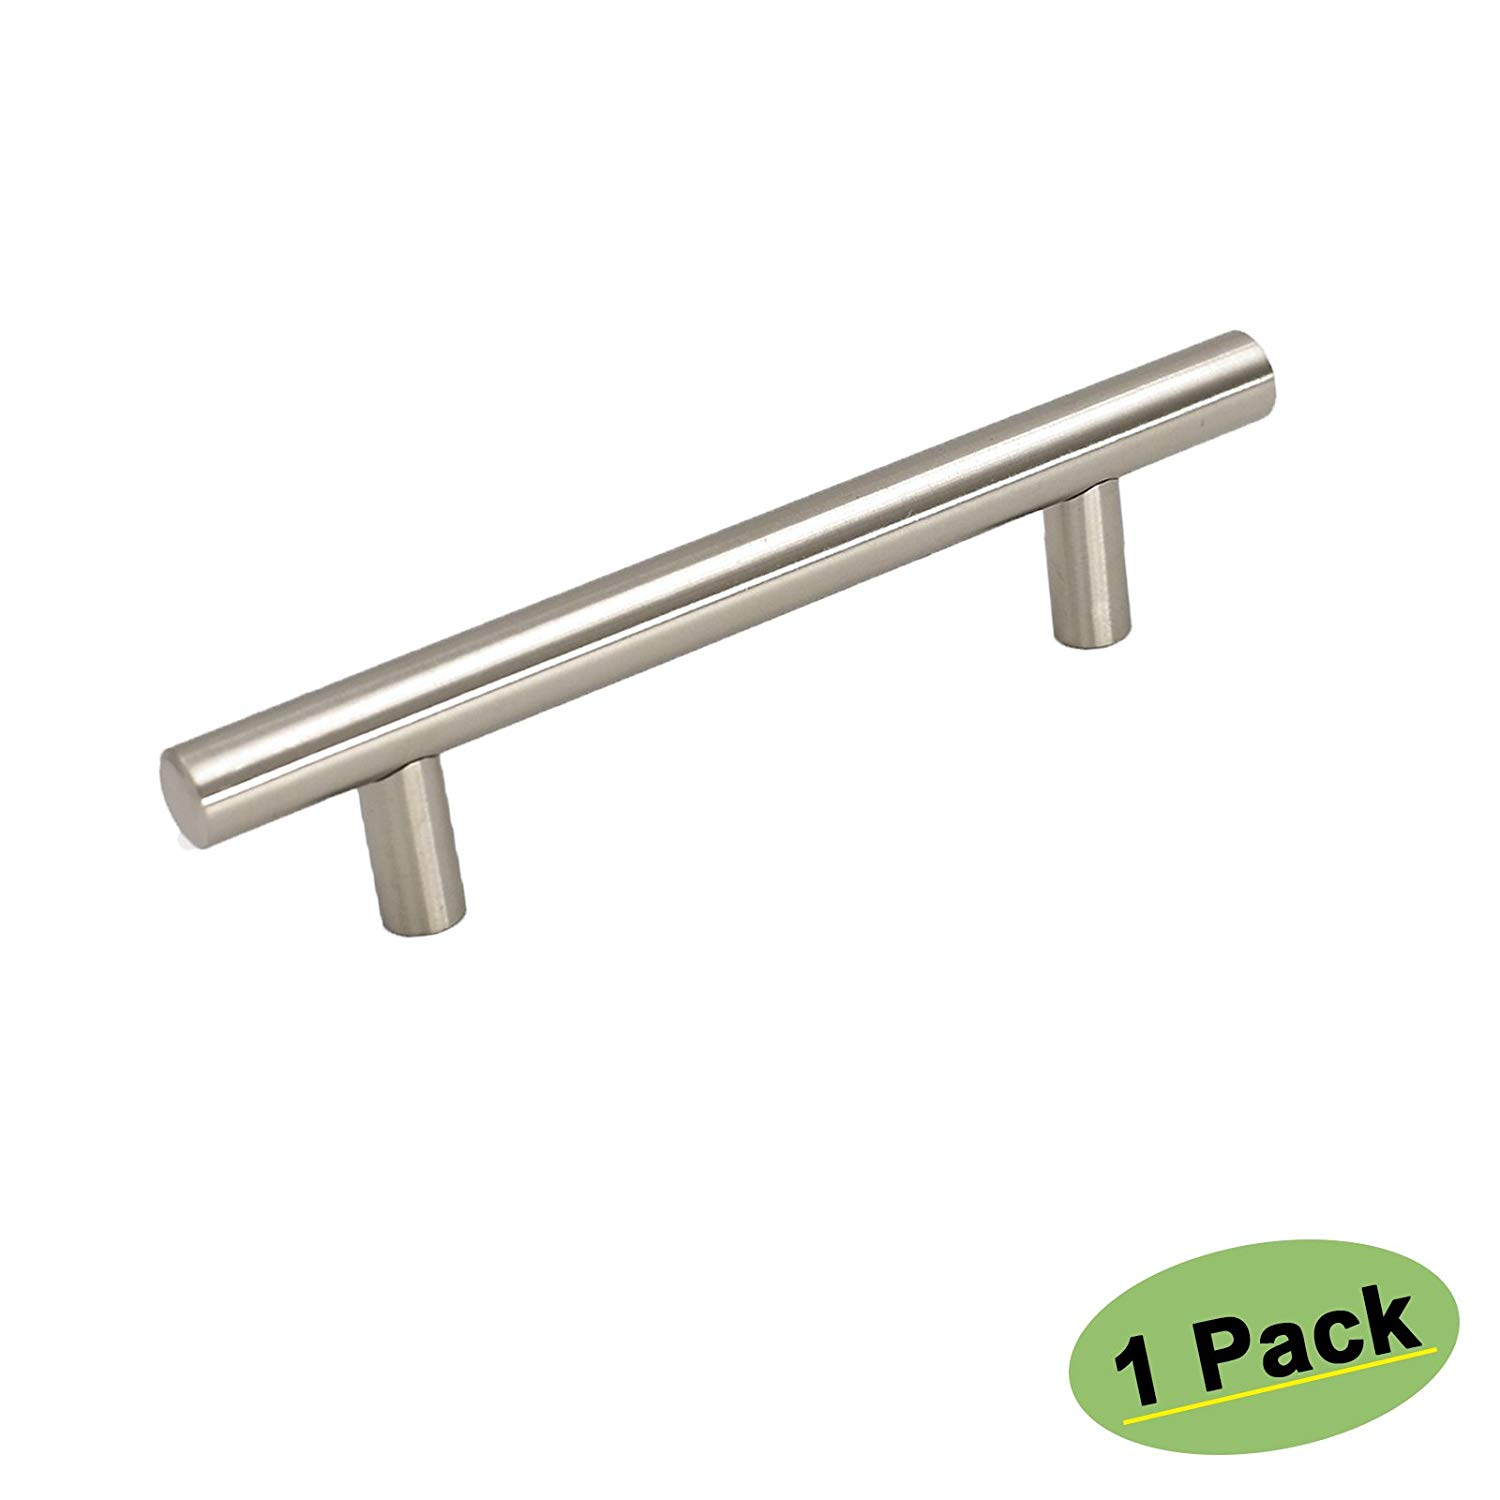 3.5 inch Cabinet Pulls Brushed Nickel - Homdiy HD201SN Stainless Steel Kitchen Cabinet Door Hardware Modern Cupboard Closet Desk Drawer Handles Knobs 1 Pack